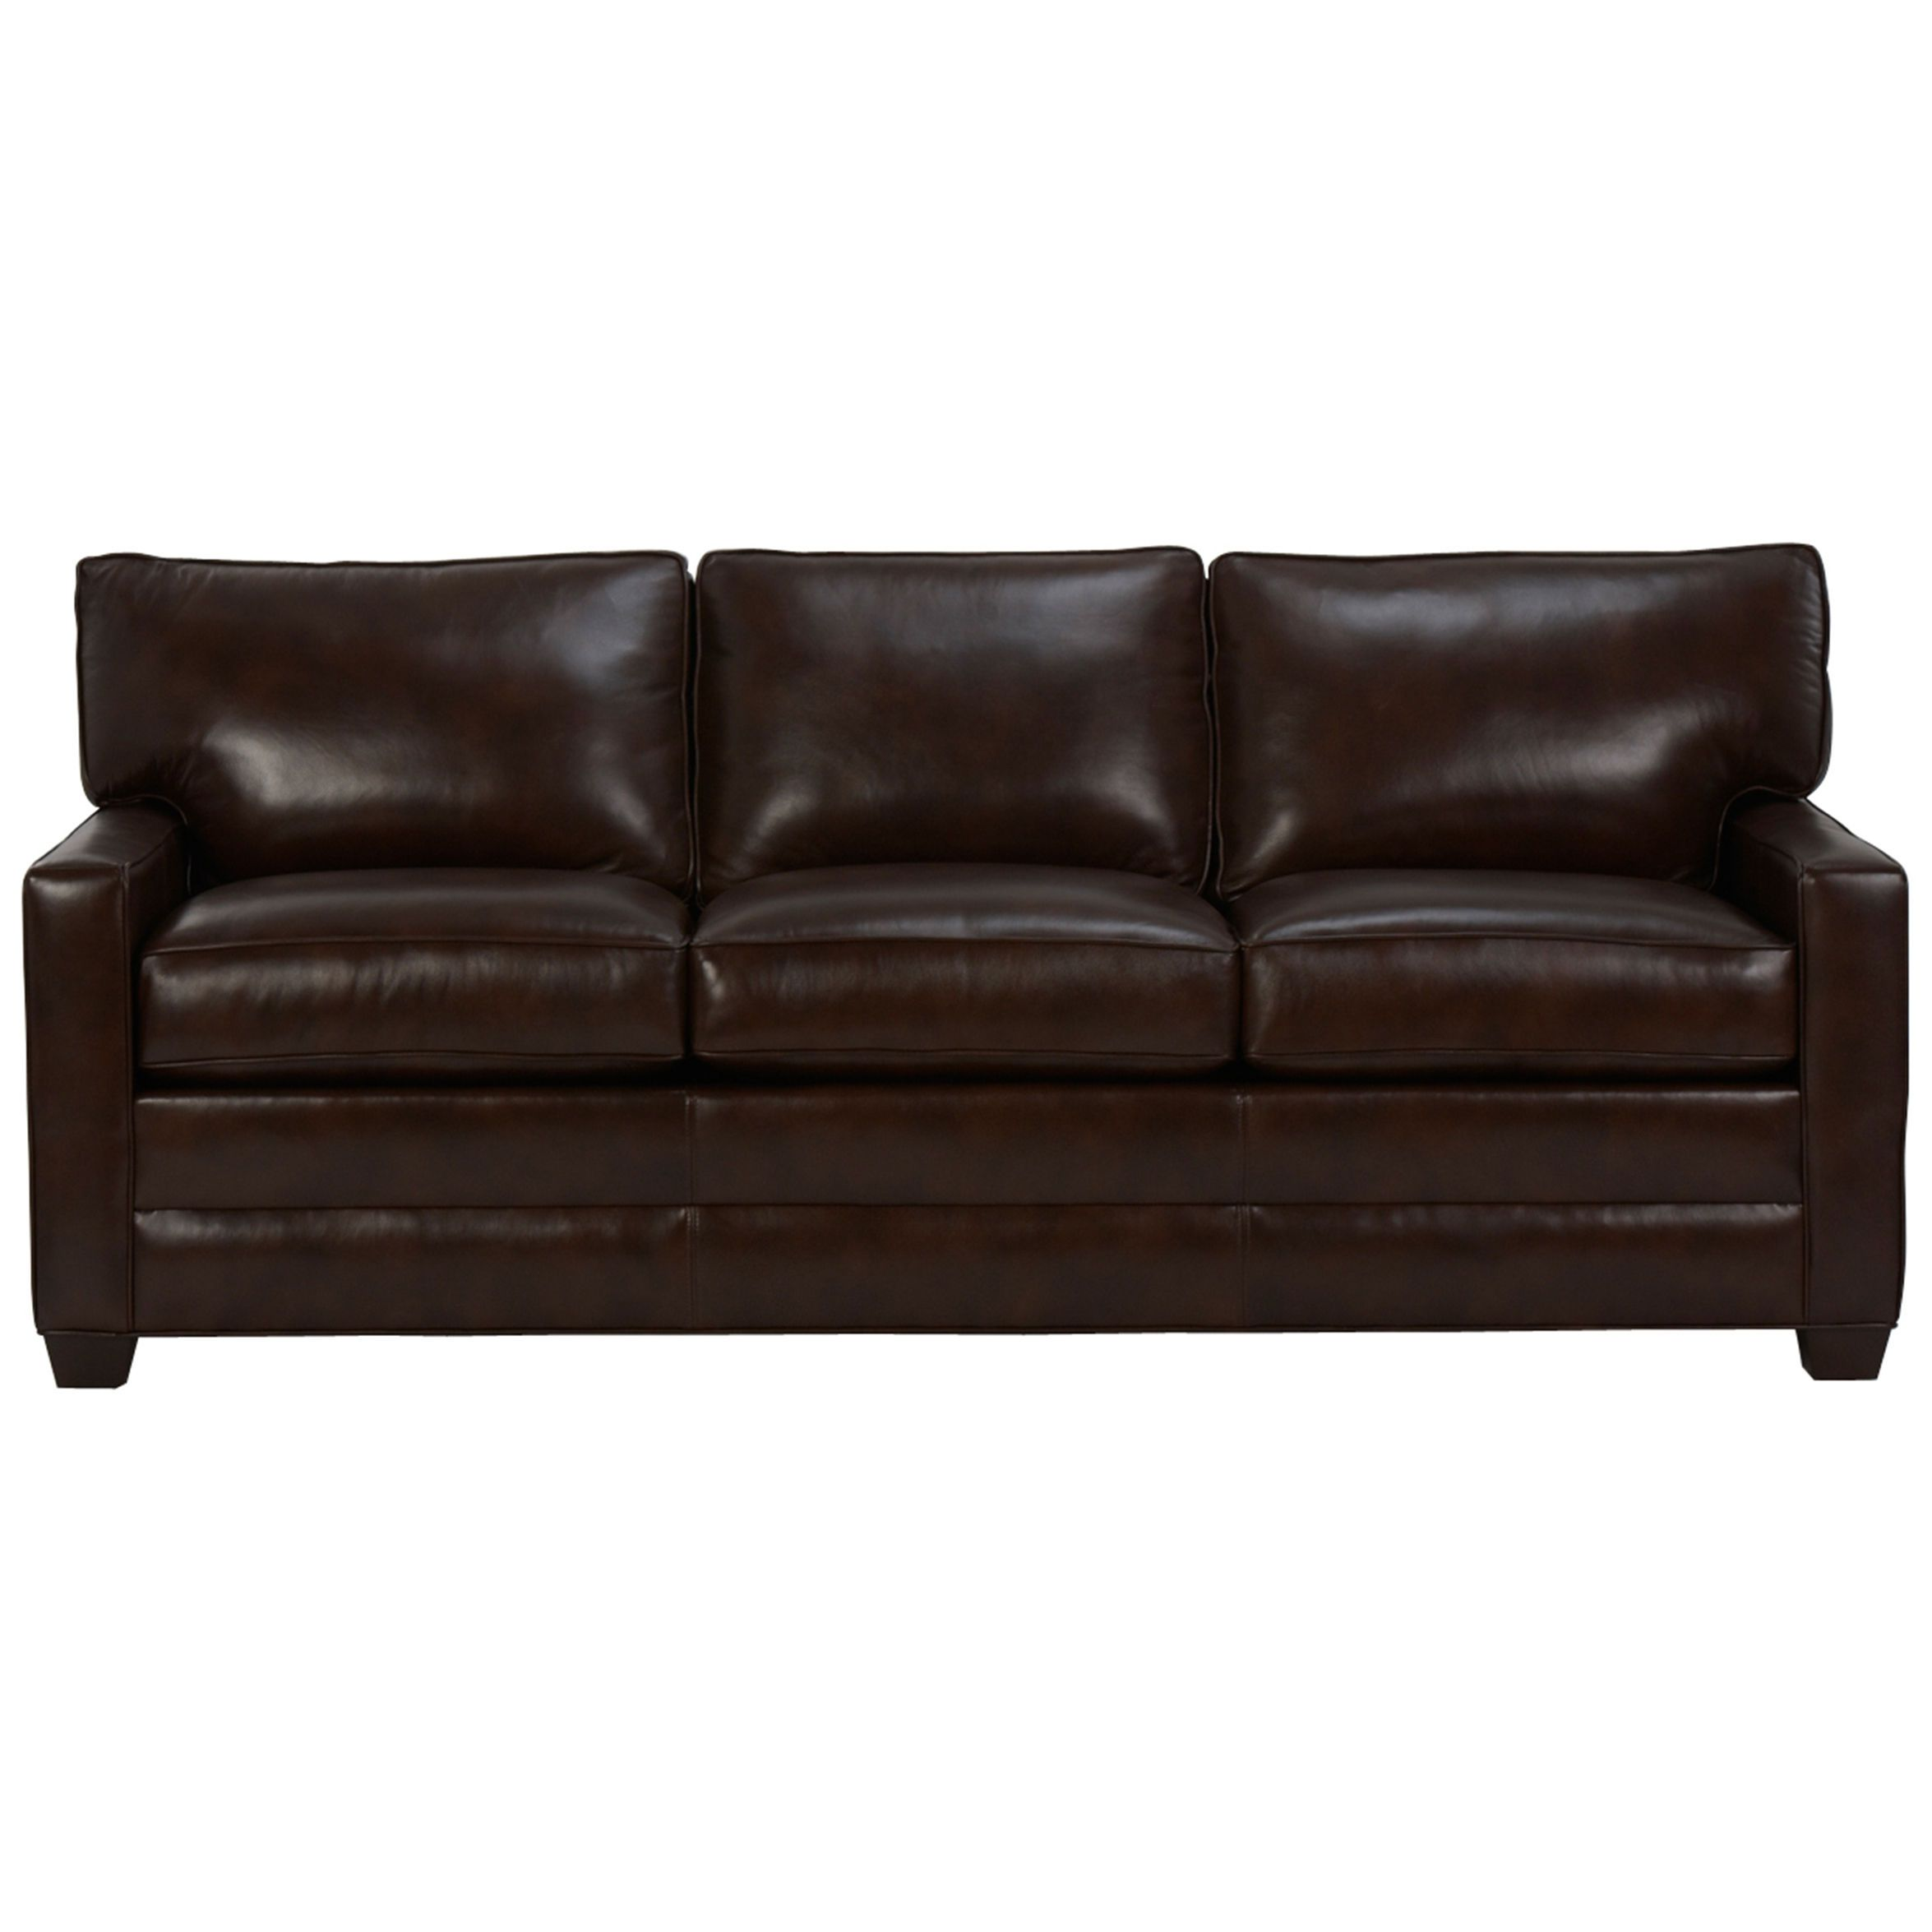 sleeper and clearance leather set warehouse sale couches allen sofas bed ethan sectional couch sofa loveseat locations for queen